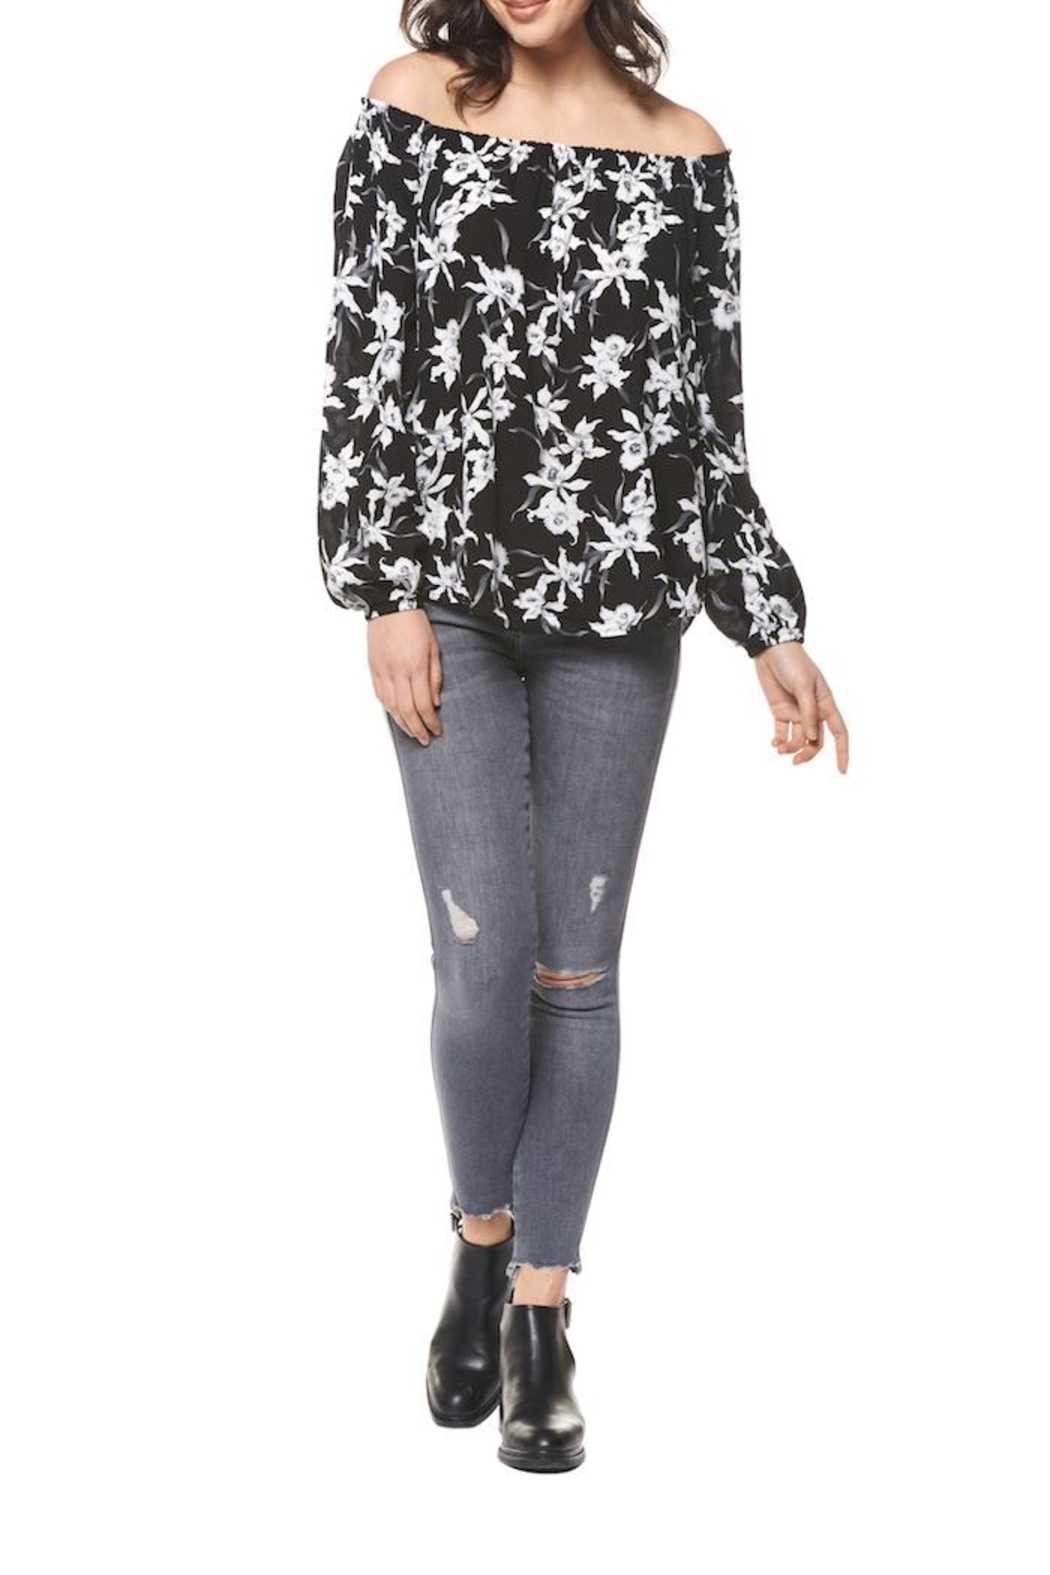 Black Tape Black Printed Floral Top - Main Image